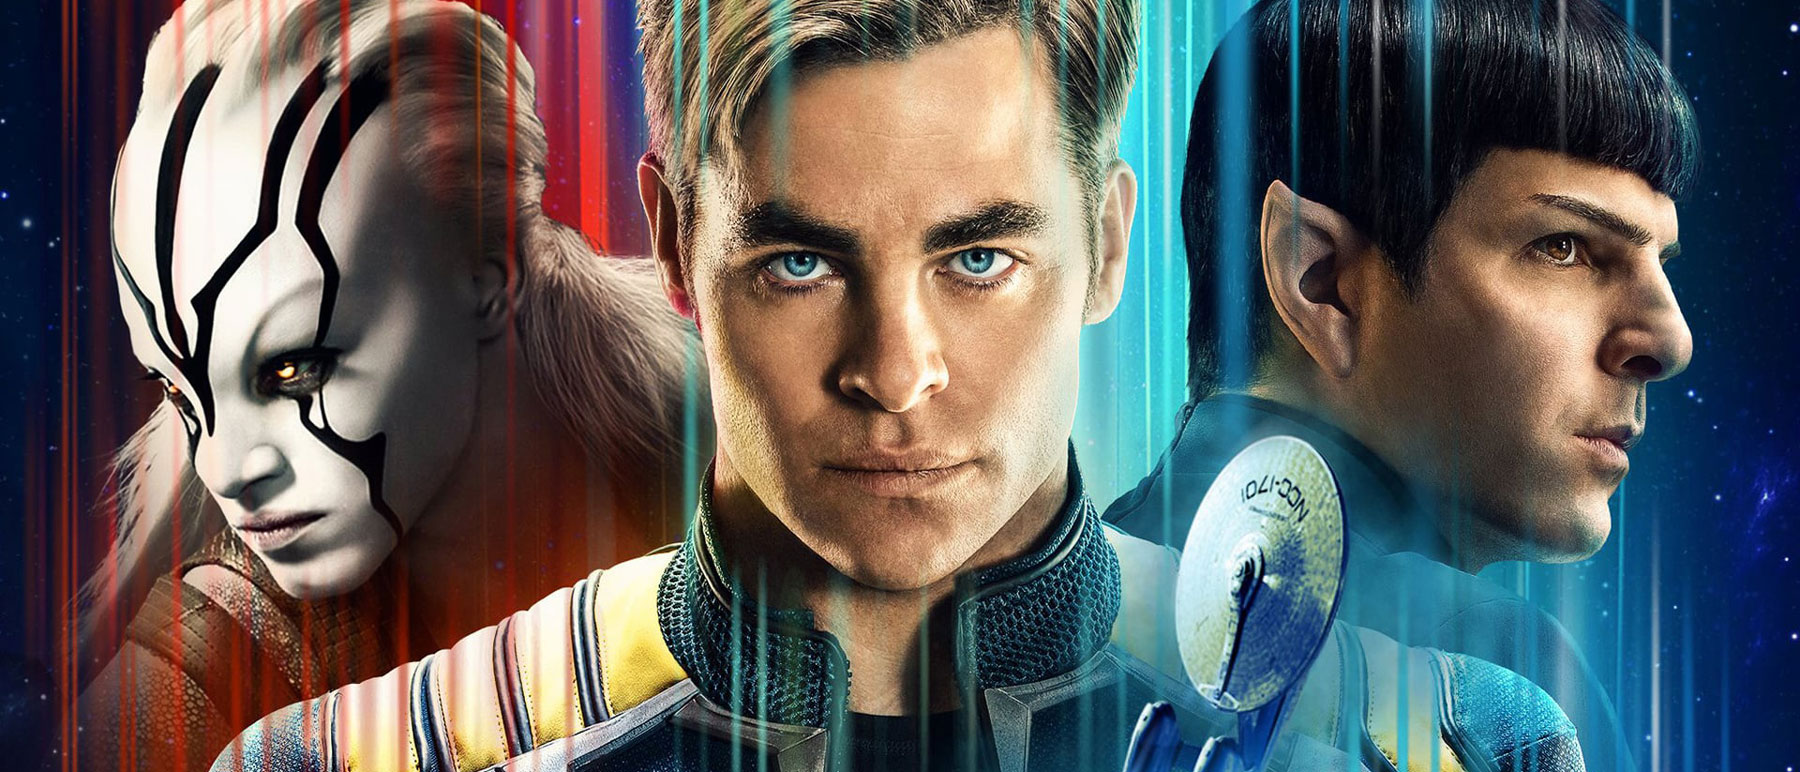 Star Trek 4 Is Reportedly In Danger Of Losing Another Director | Small Screen